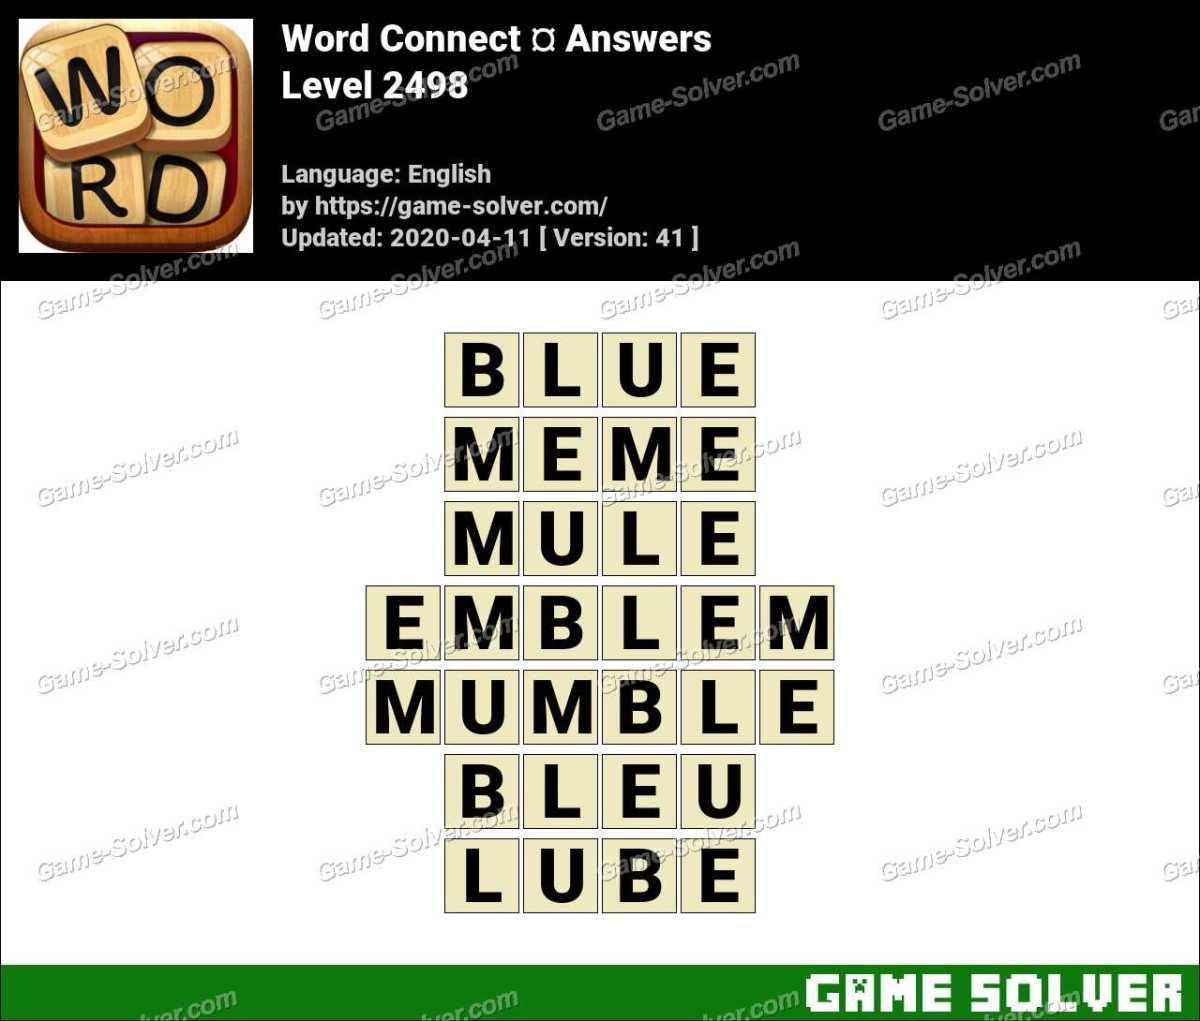 Word Connect Level 2498 Answers